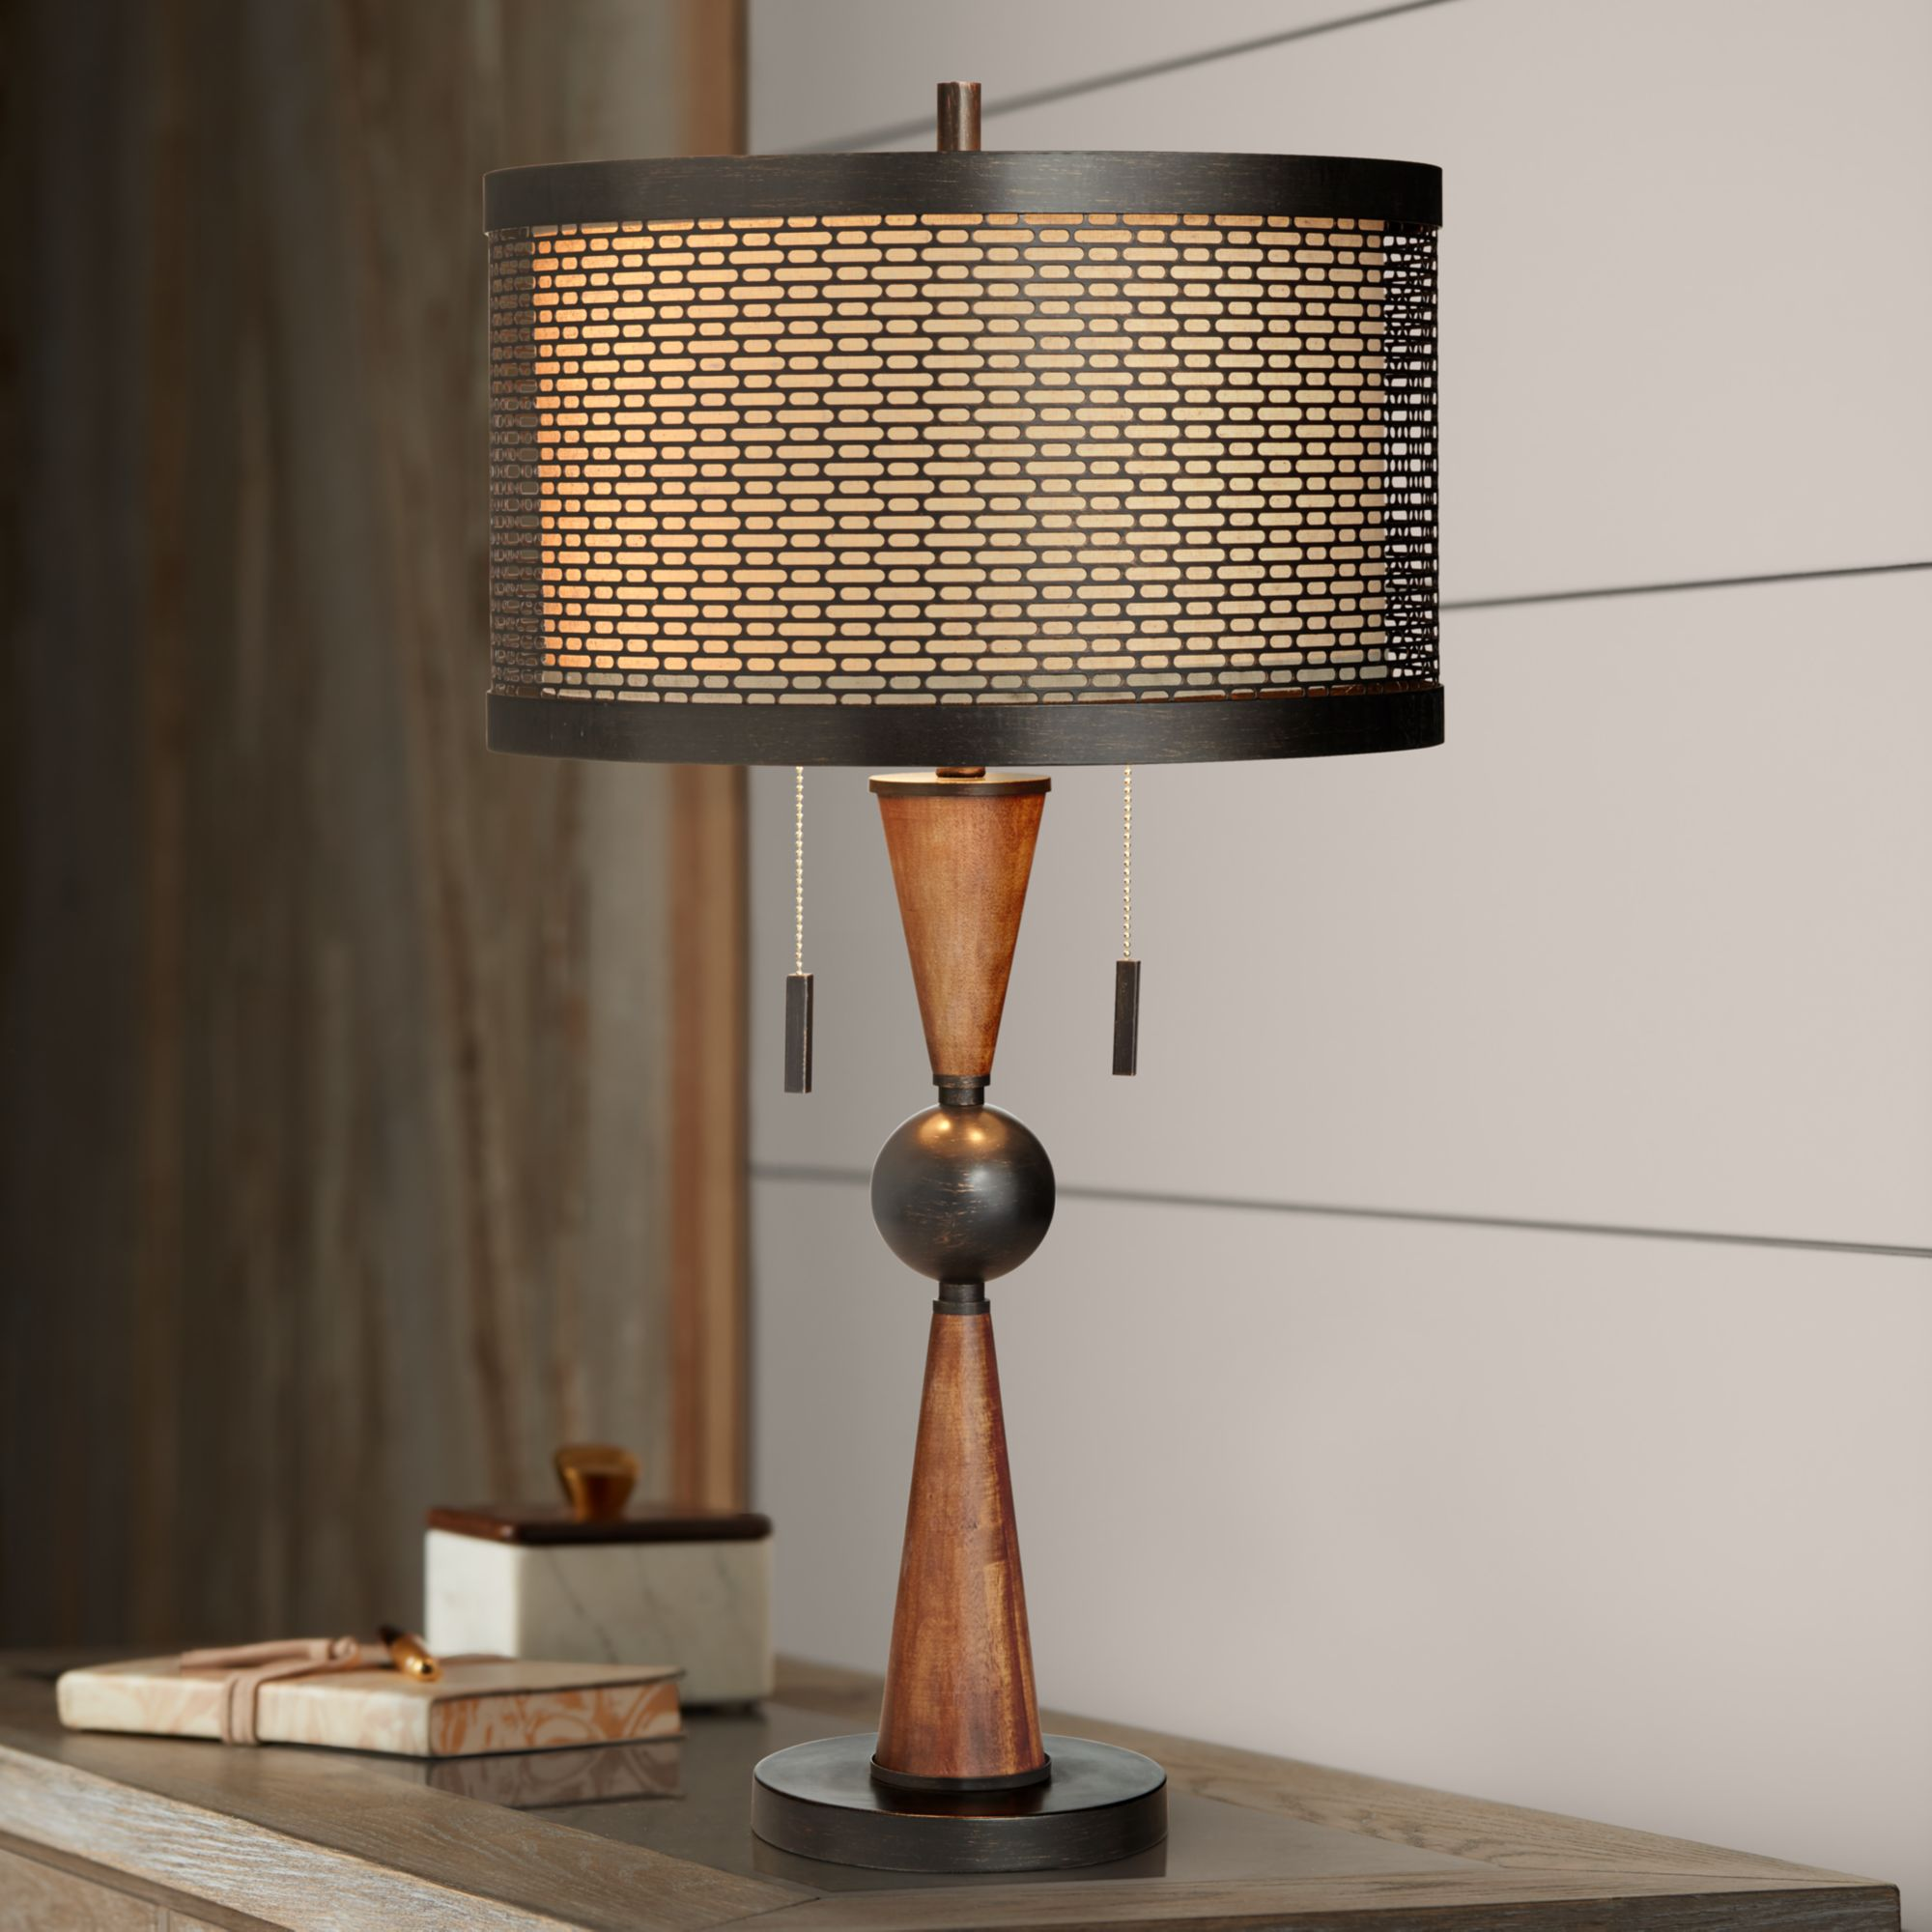 Franklin Iron Works Mid Century Modern Table Lamp Wood Bronze Metal Shade For Living Room Family Bedroom Bedside Nightstand Office Walmart Com Walmart Com